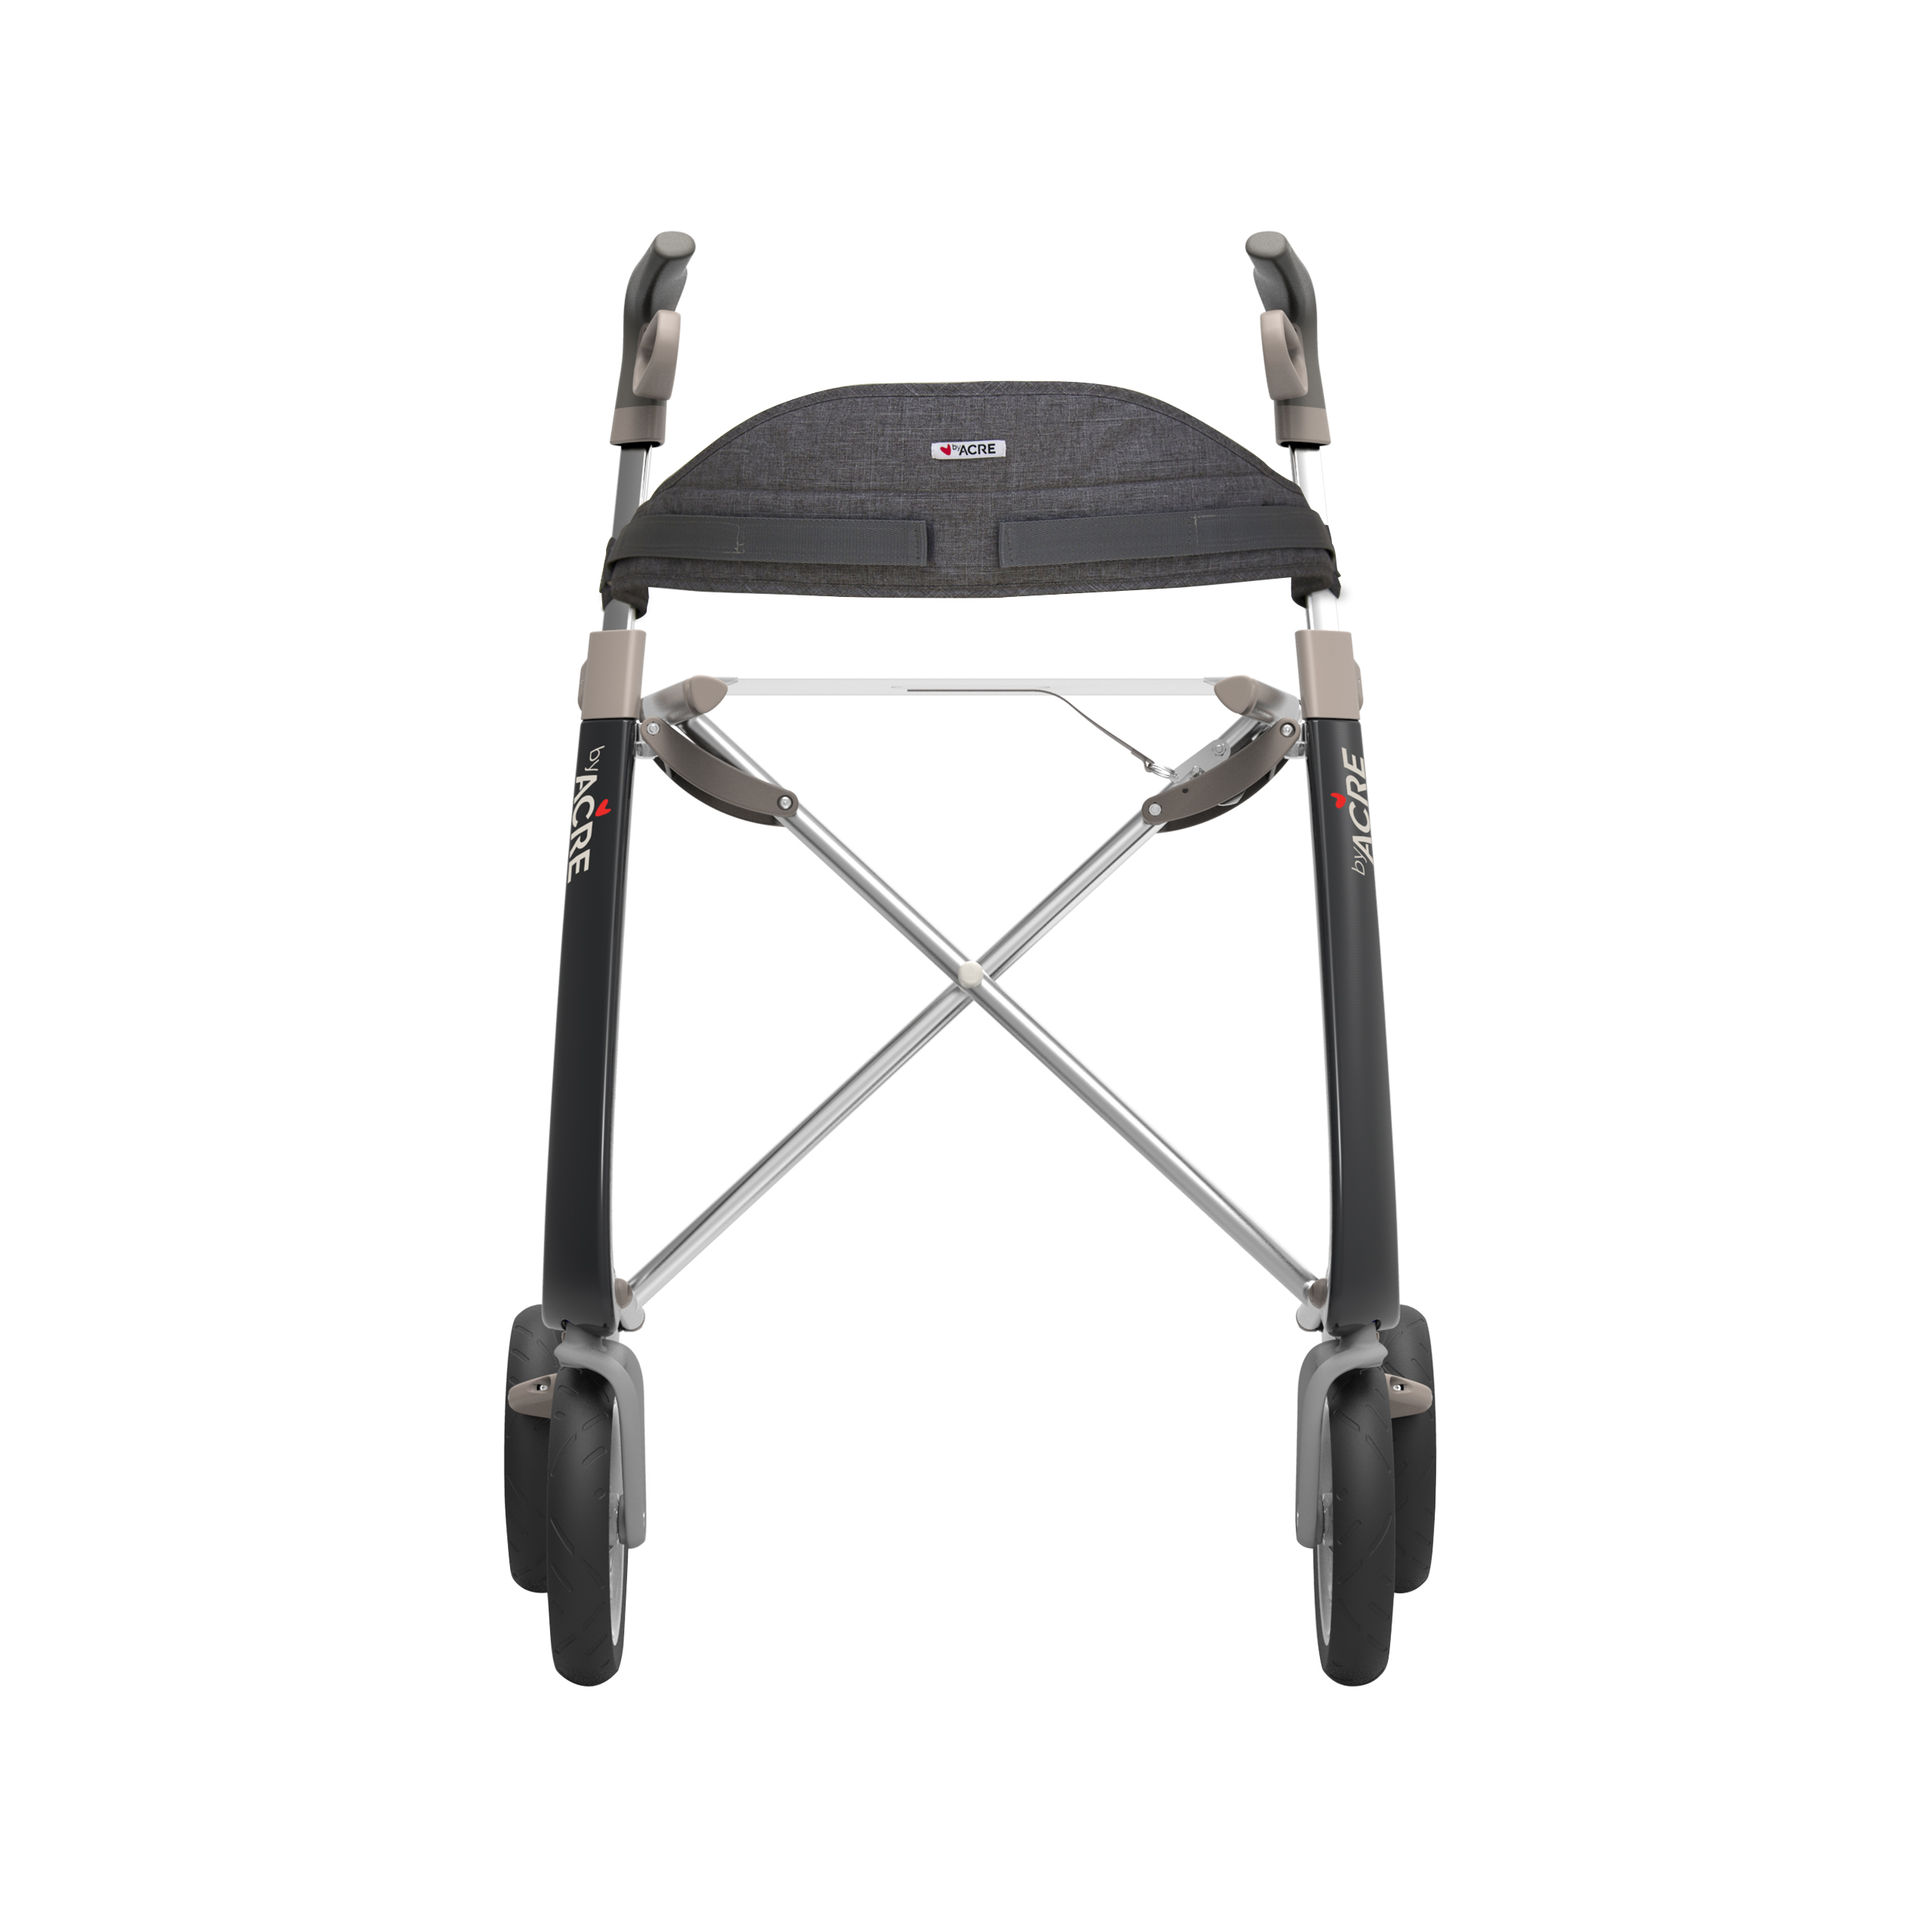 Backrest on the black Carbon Ultralight Rollator byACRE - seen from the front